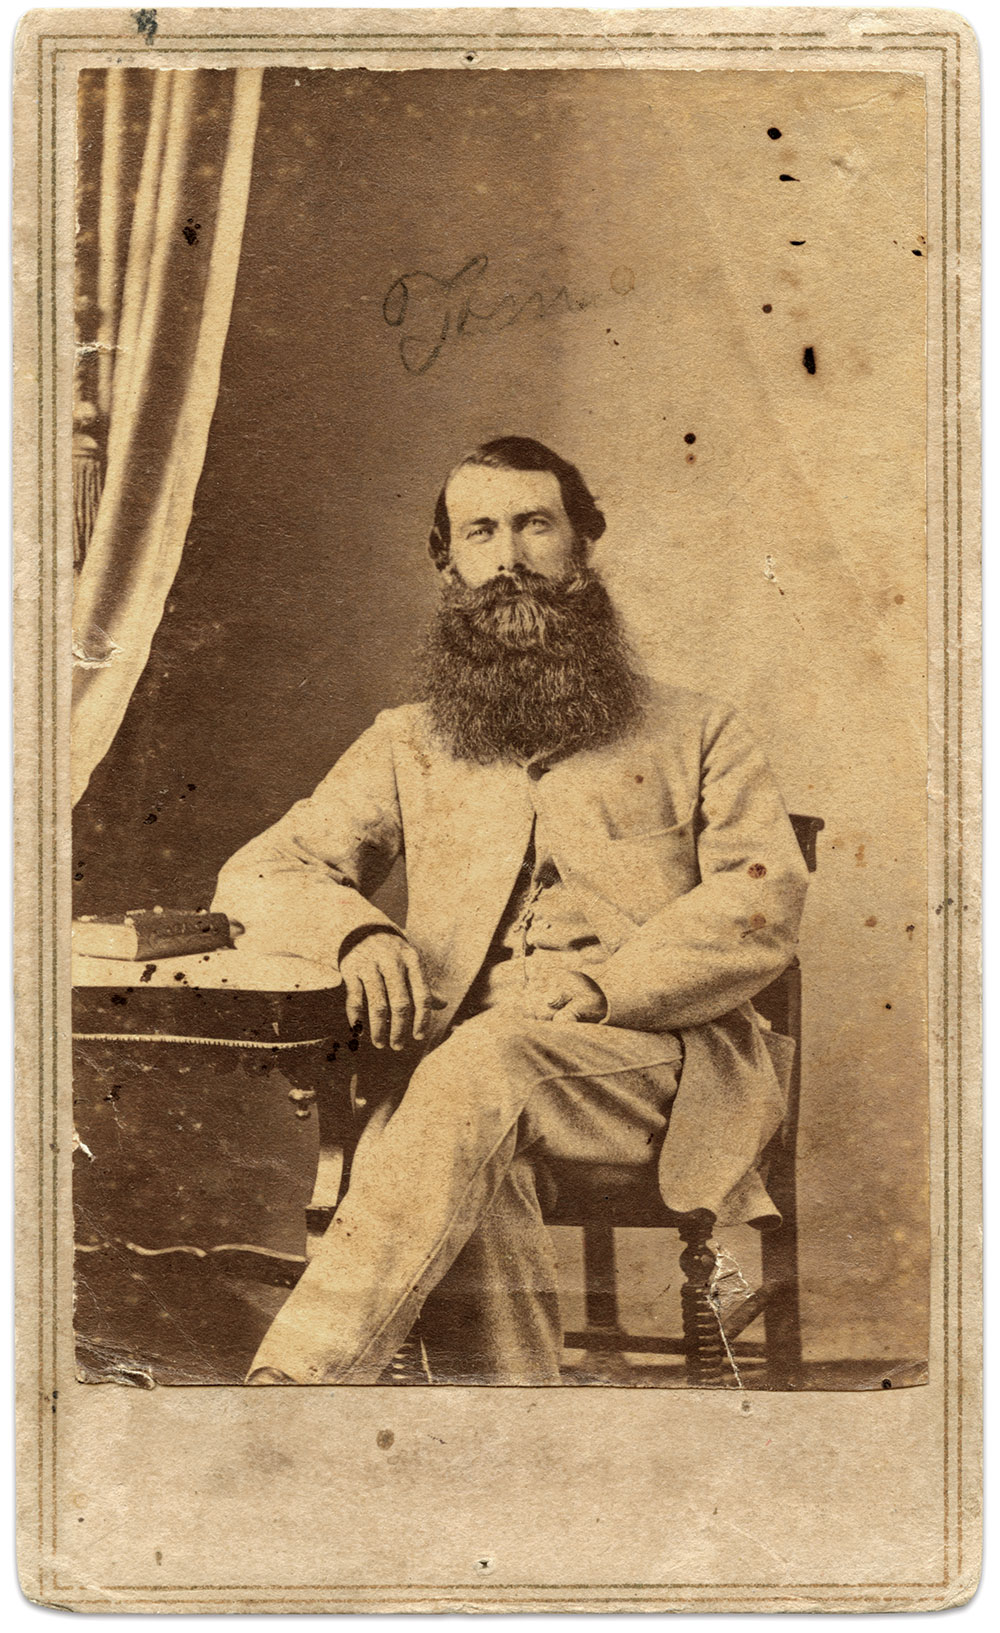 Pilot Thomas Mann Thompson, pictured in Bermuda during the summer of 1864. A native of Smithville (now, Southport), N.C., Thompson is credited with having made more runs through the blockade, and on more vessels, than any other pilot. To his credit, he was never captured despite making over thirty runs through the blockade. Fred D. Taylor Collection.